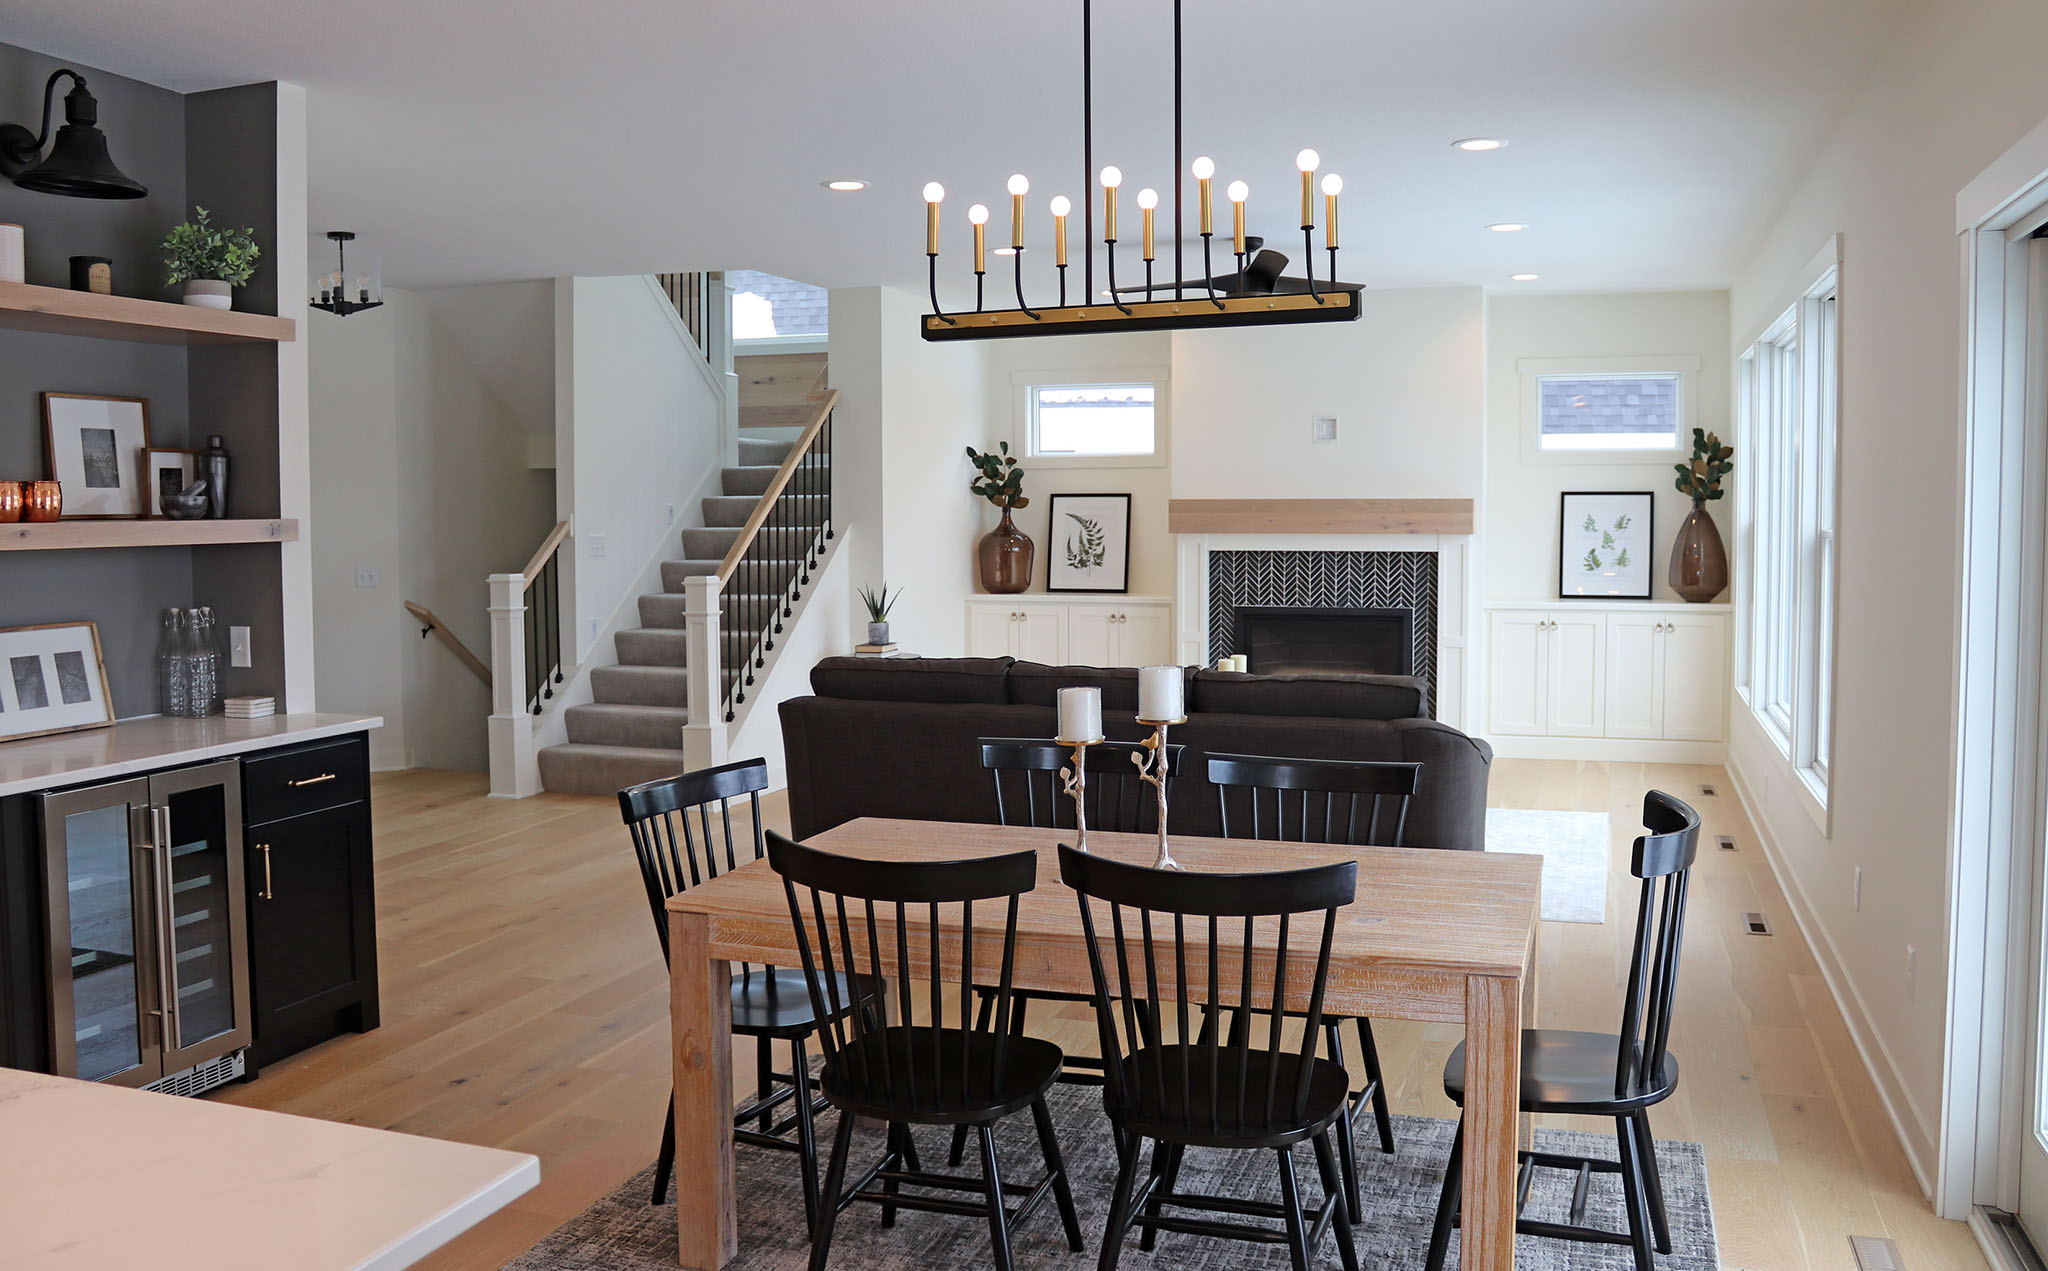 Bright, contemporary open floor plan with dining room, living room and bar nook area